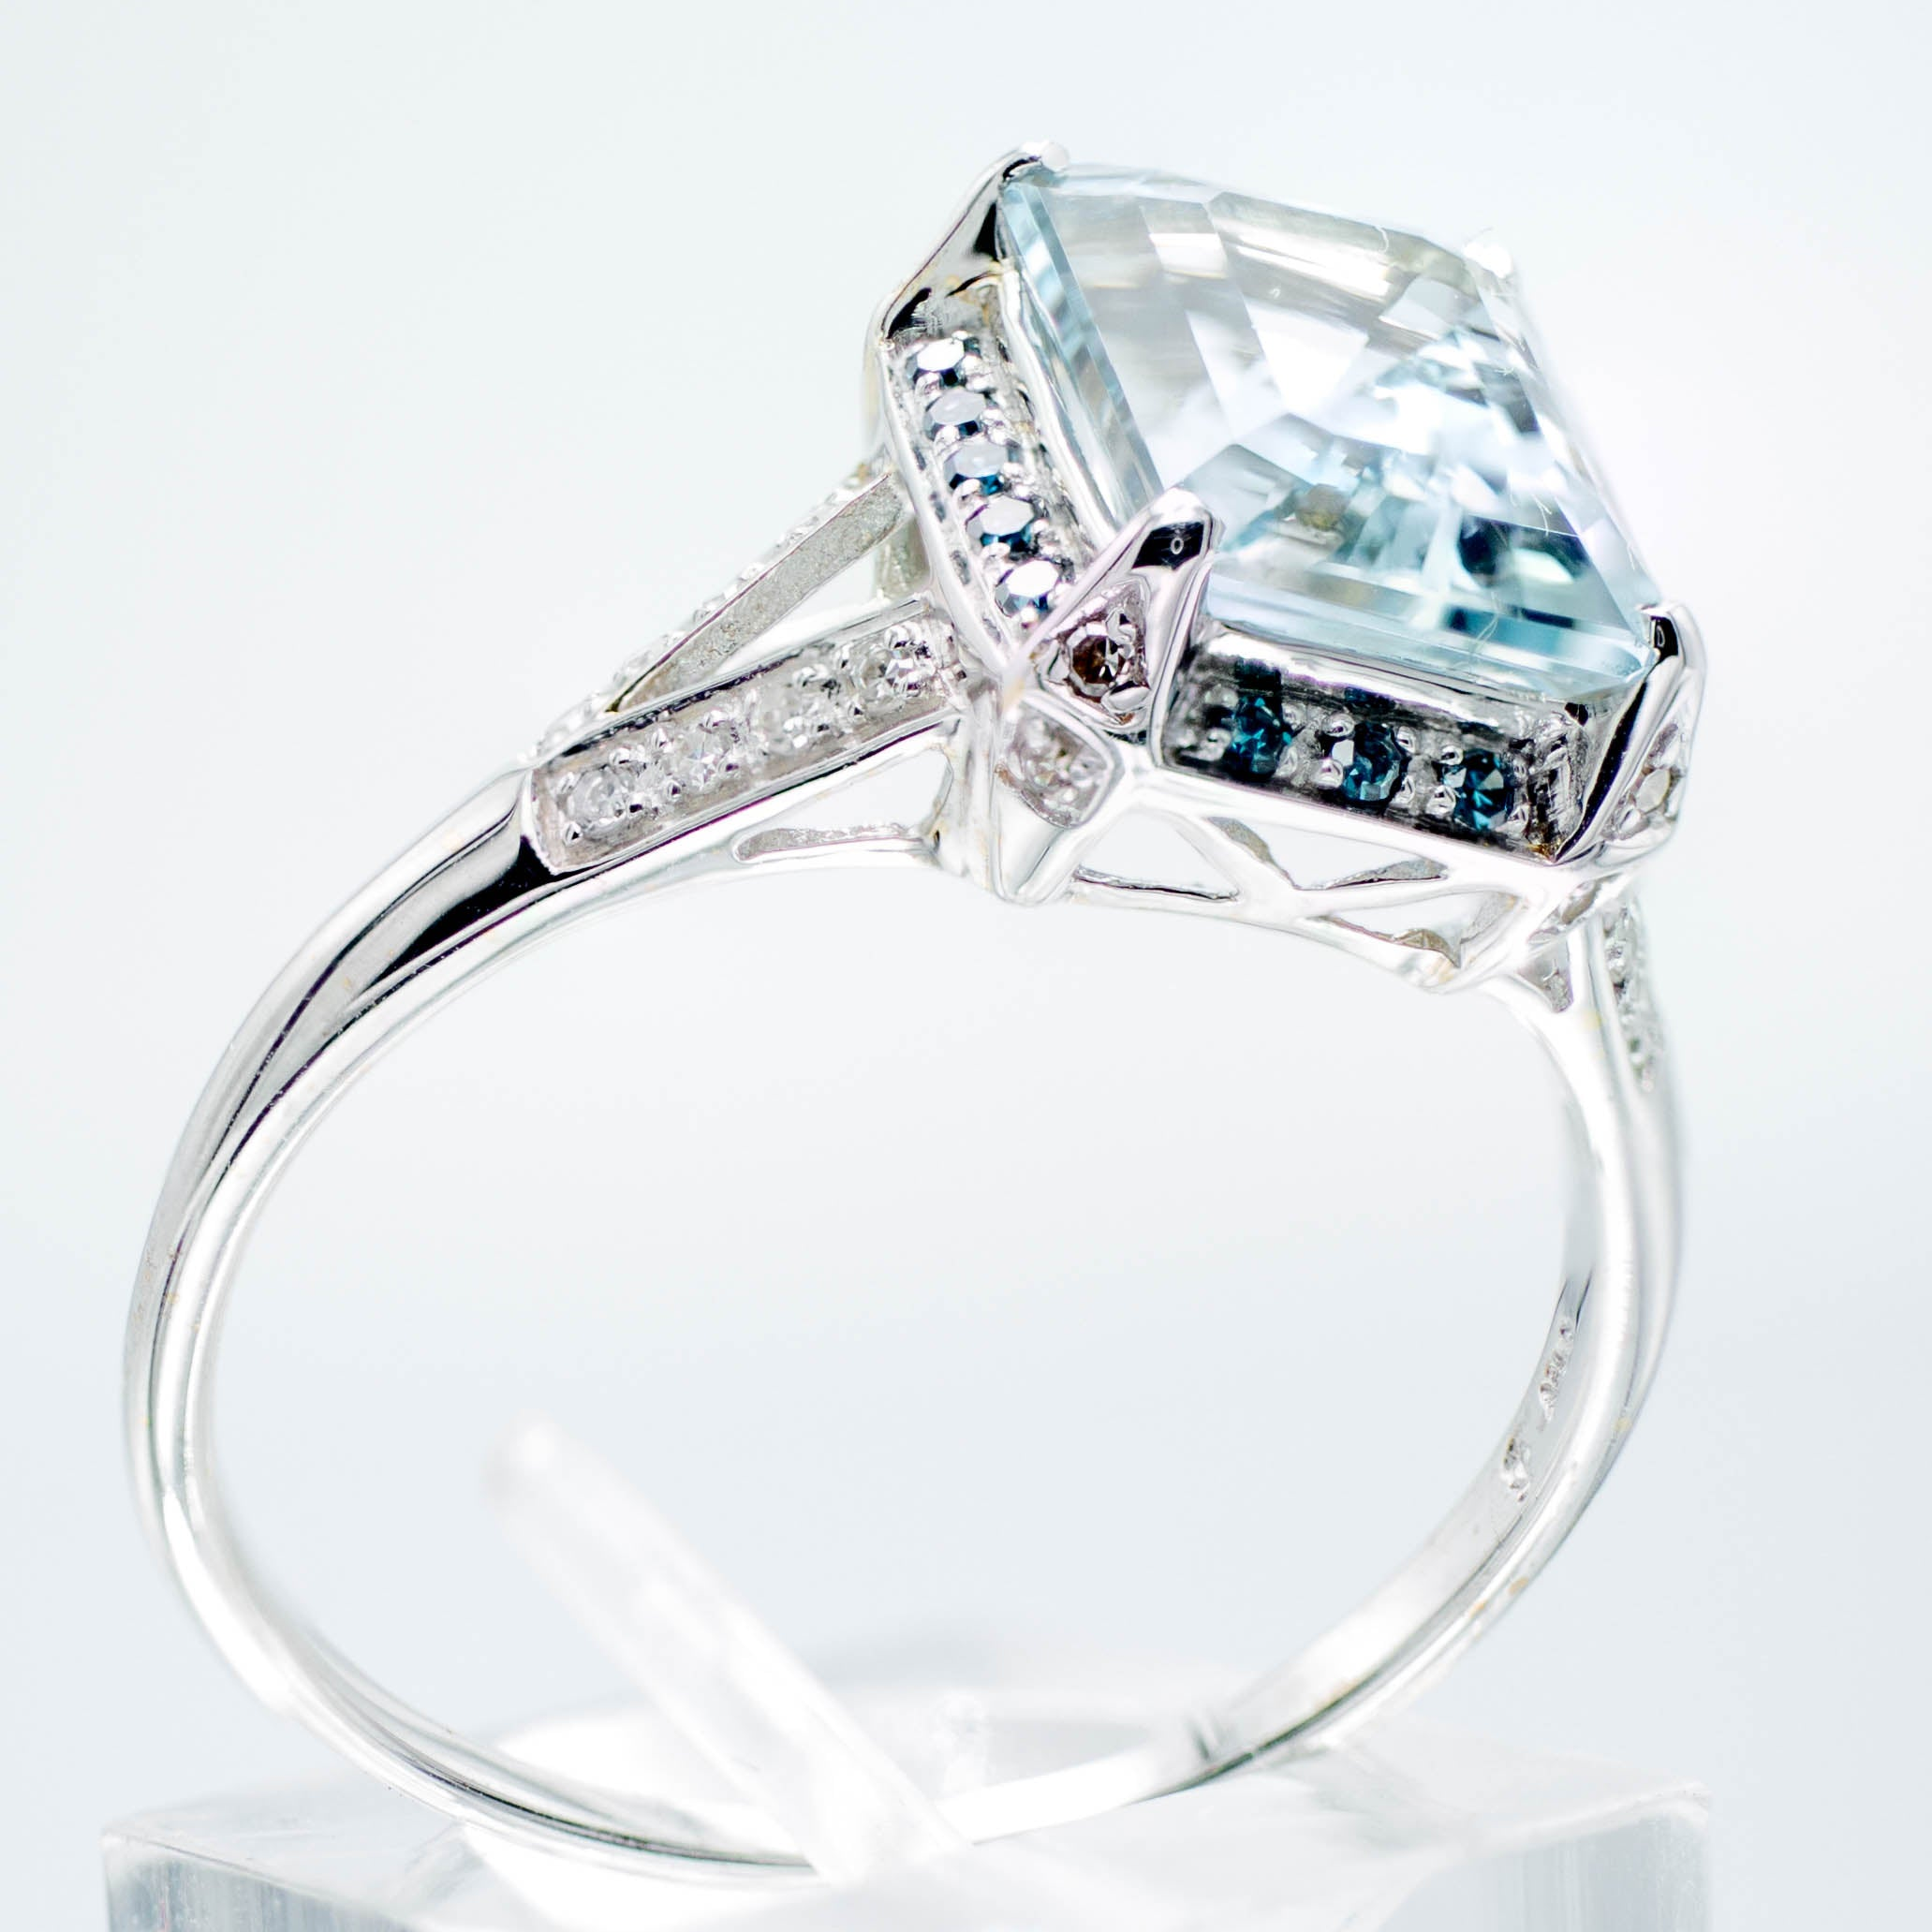 Vintage Aquamarine Sapphire & Diamond Ring 14K White Gold